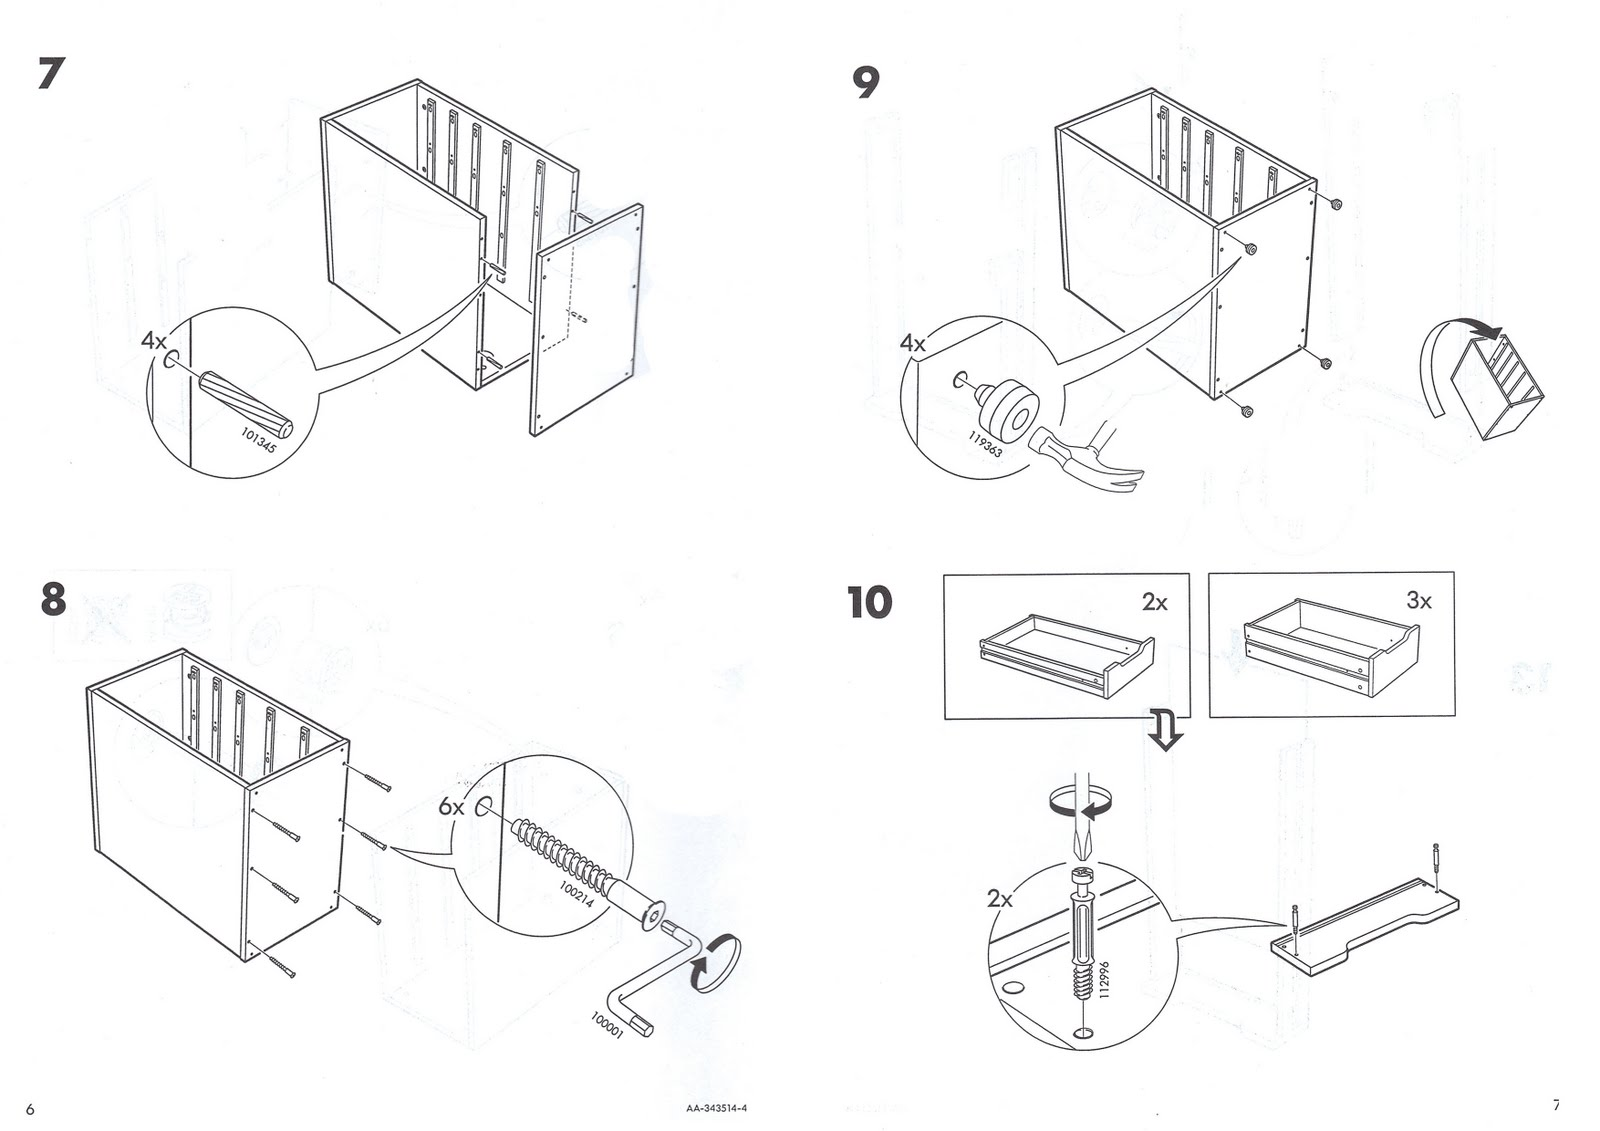 Ikea on pinterest for Ikea assembly instructions help